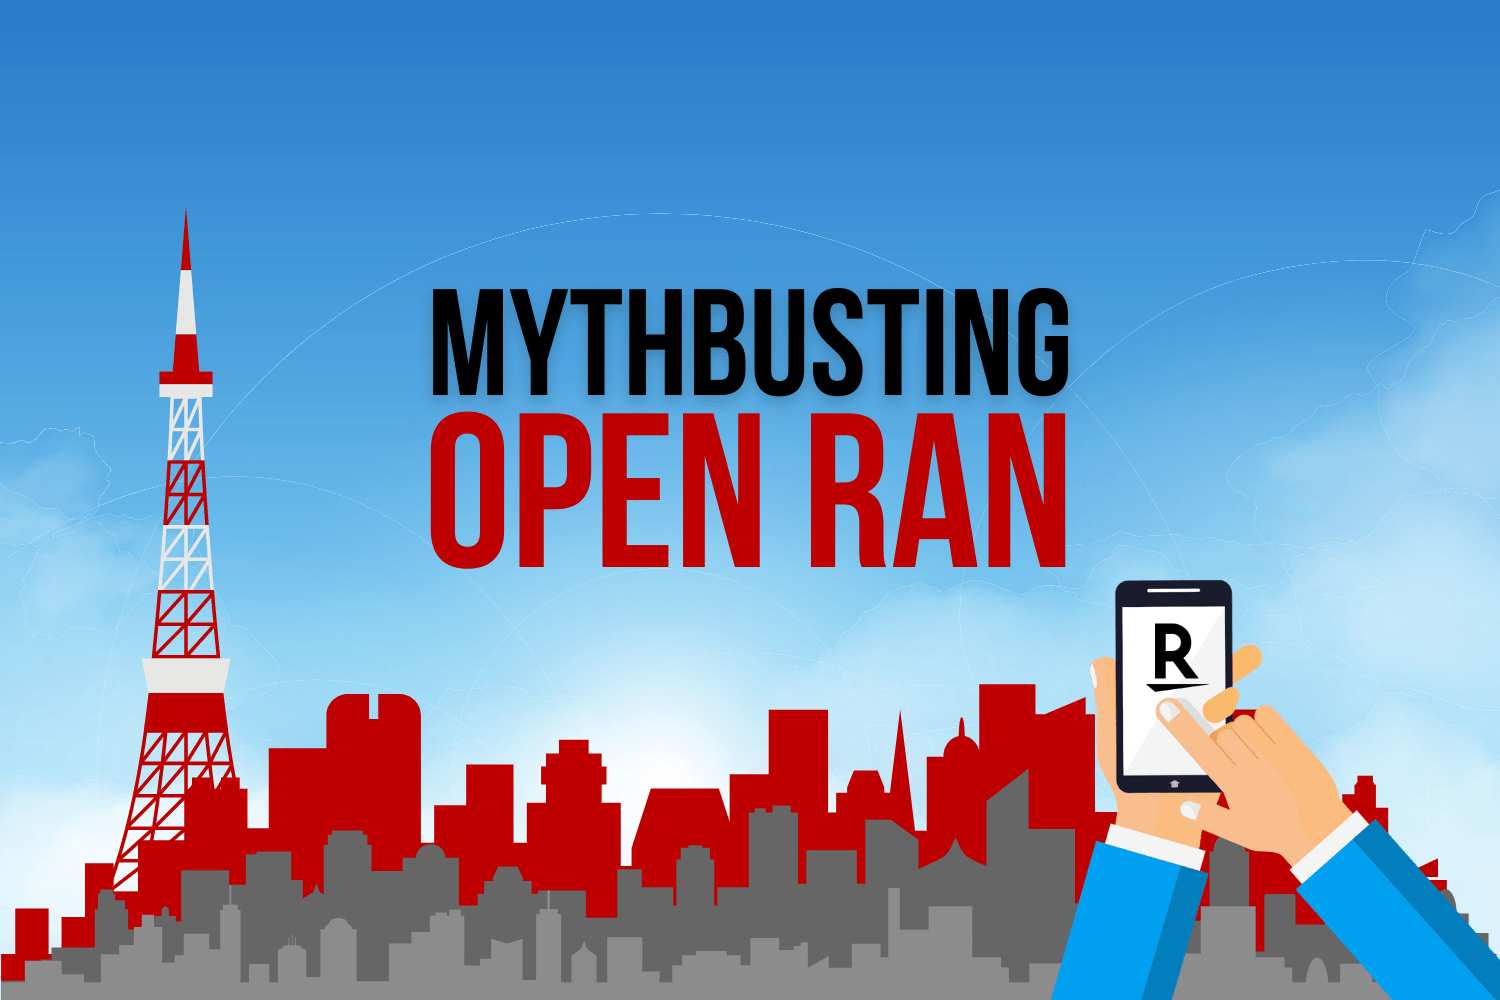 Mythbusting Open RAN – separating fact from fiction on open radio access networks